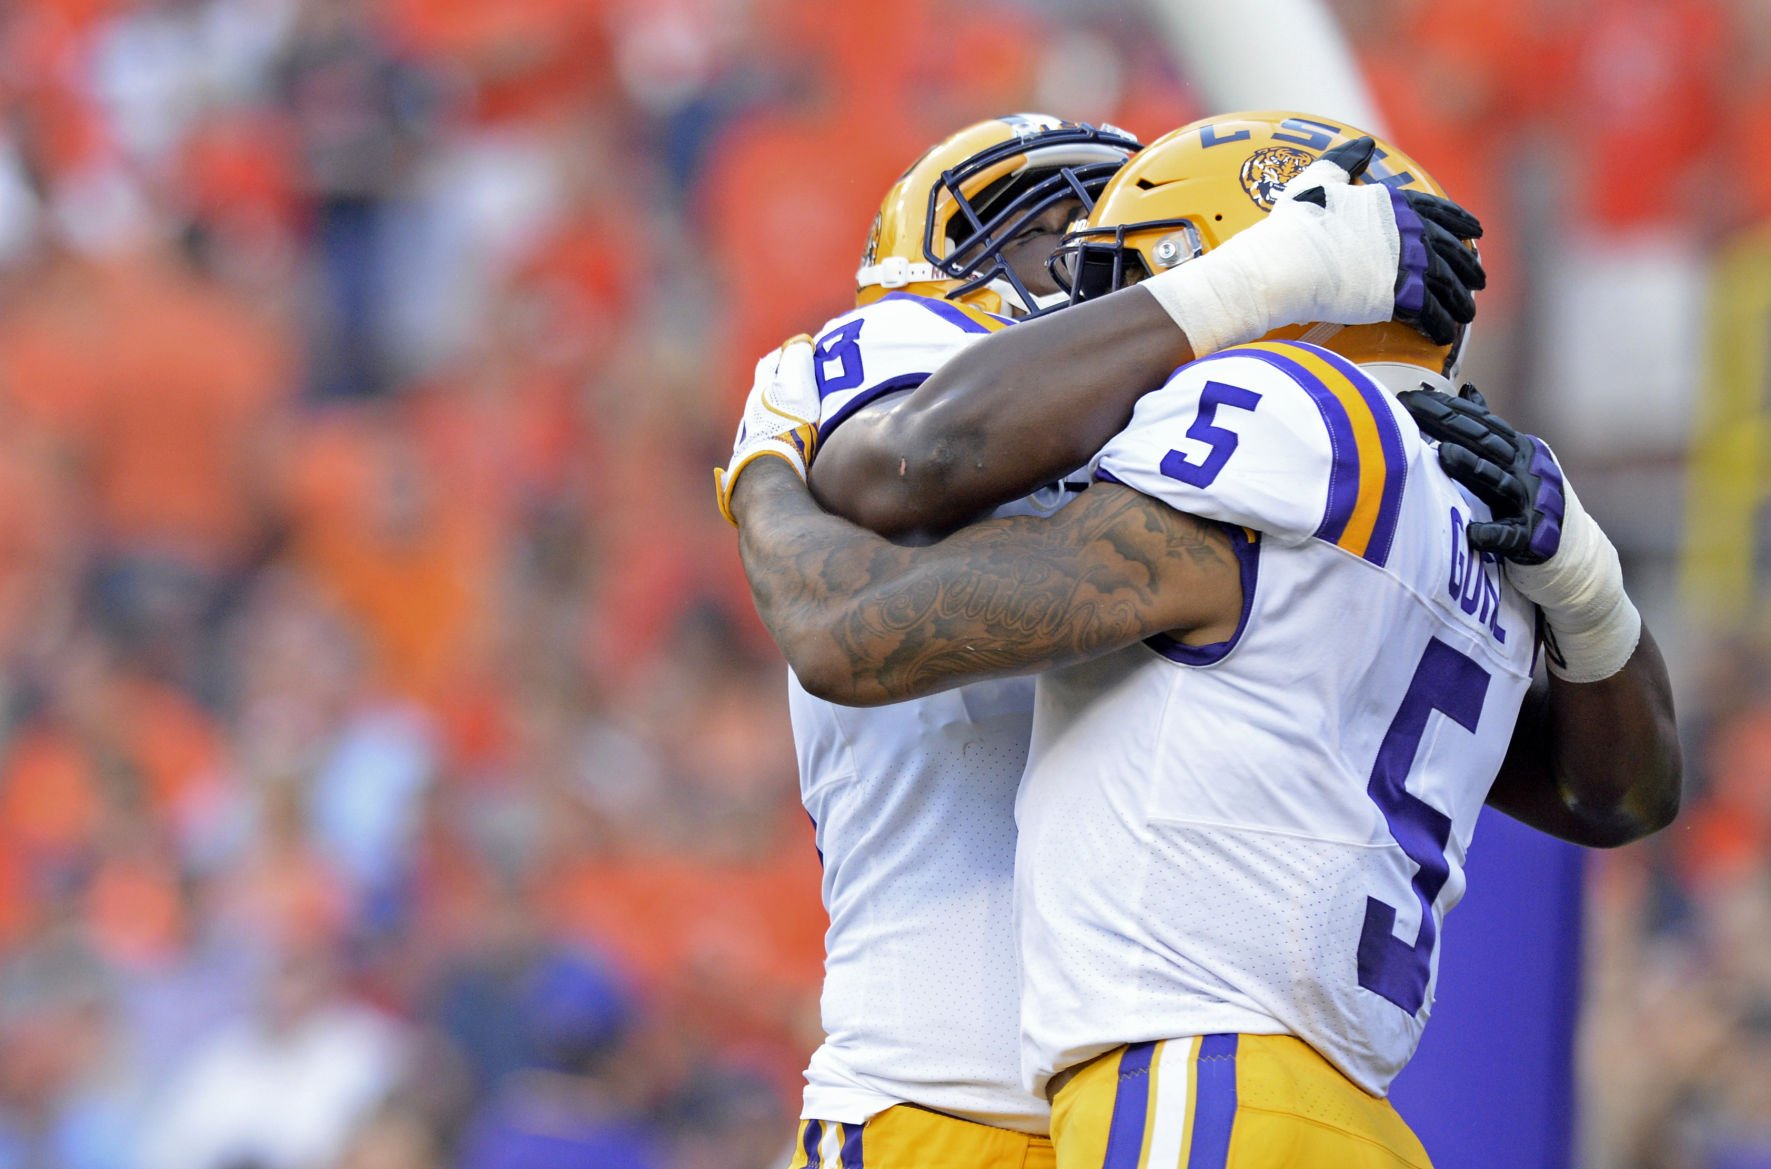 LSU unranked in both Coaches and AP polls following loss to Troy